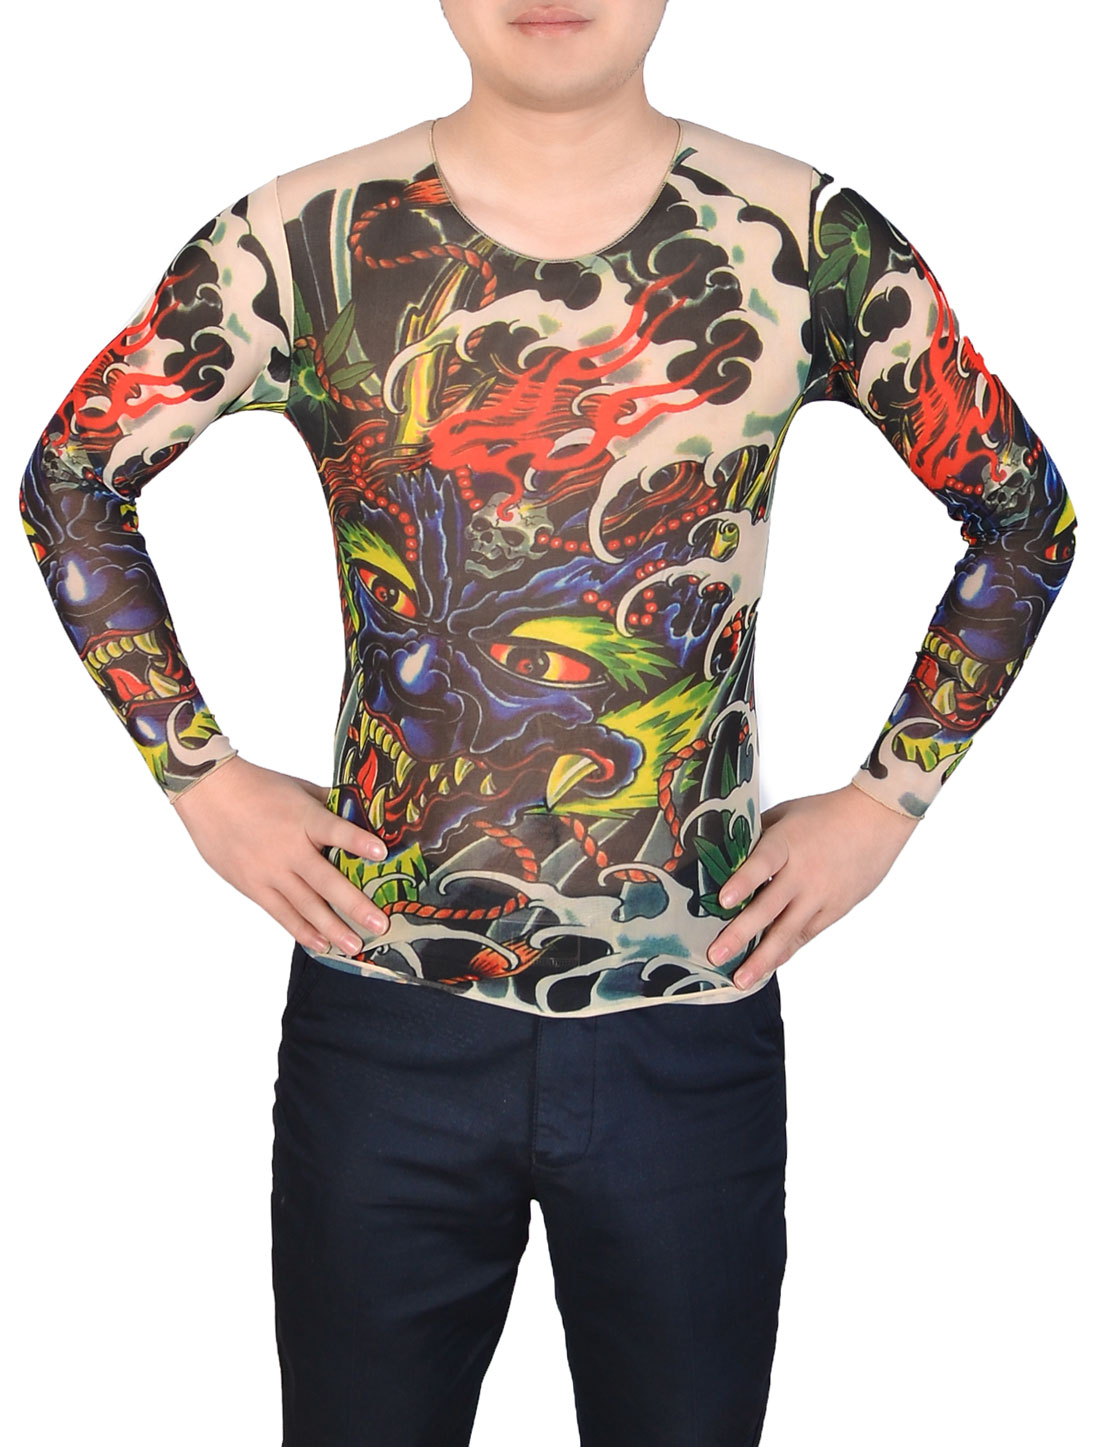 Men Round Neck Meshy Design Tattoo T-Shirt Colorful Size S